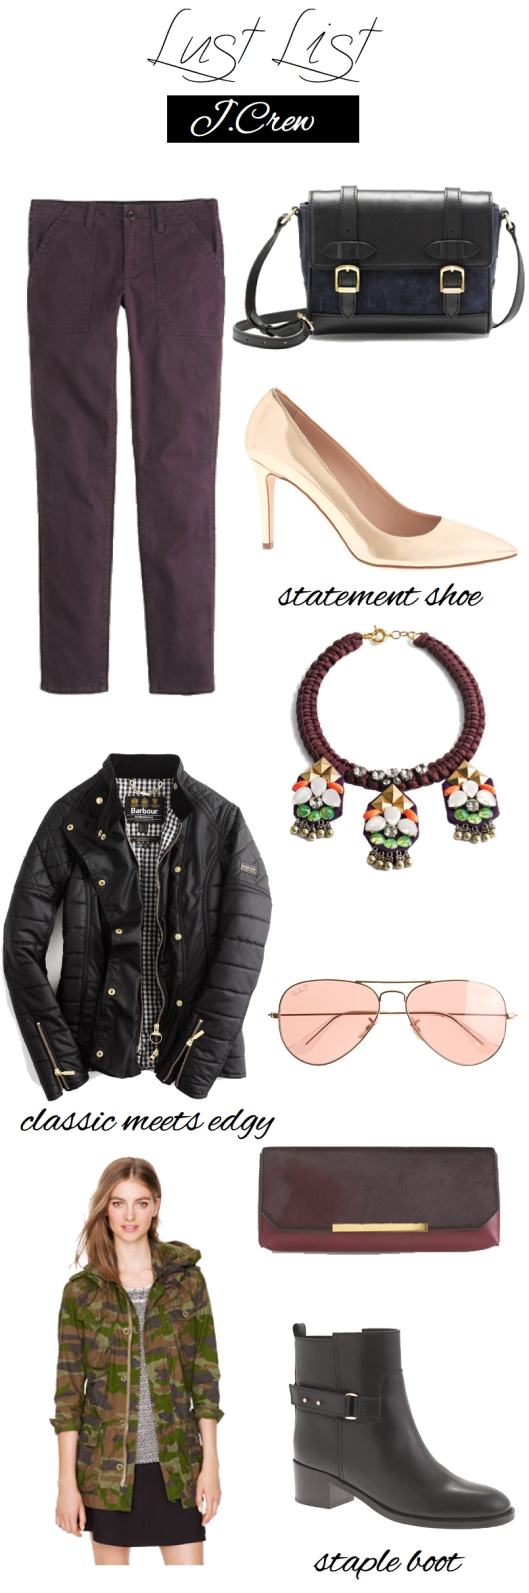 Lust List - J.Crew | TheSubtleStatement.com